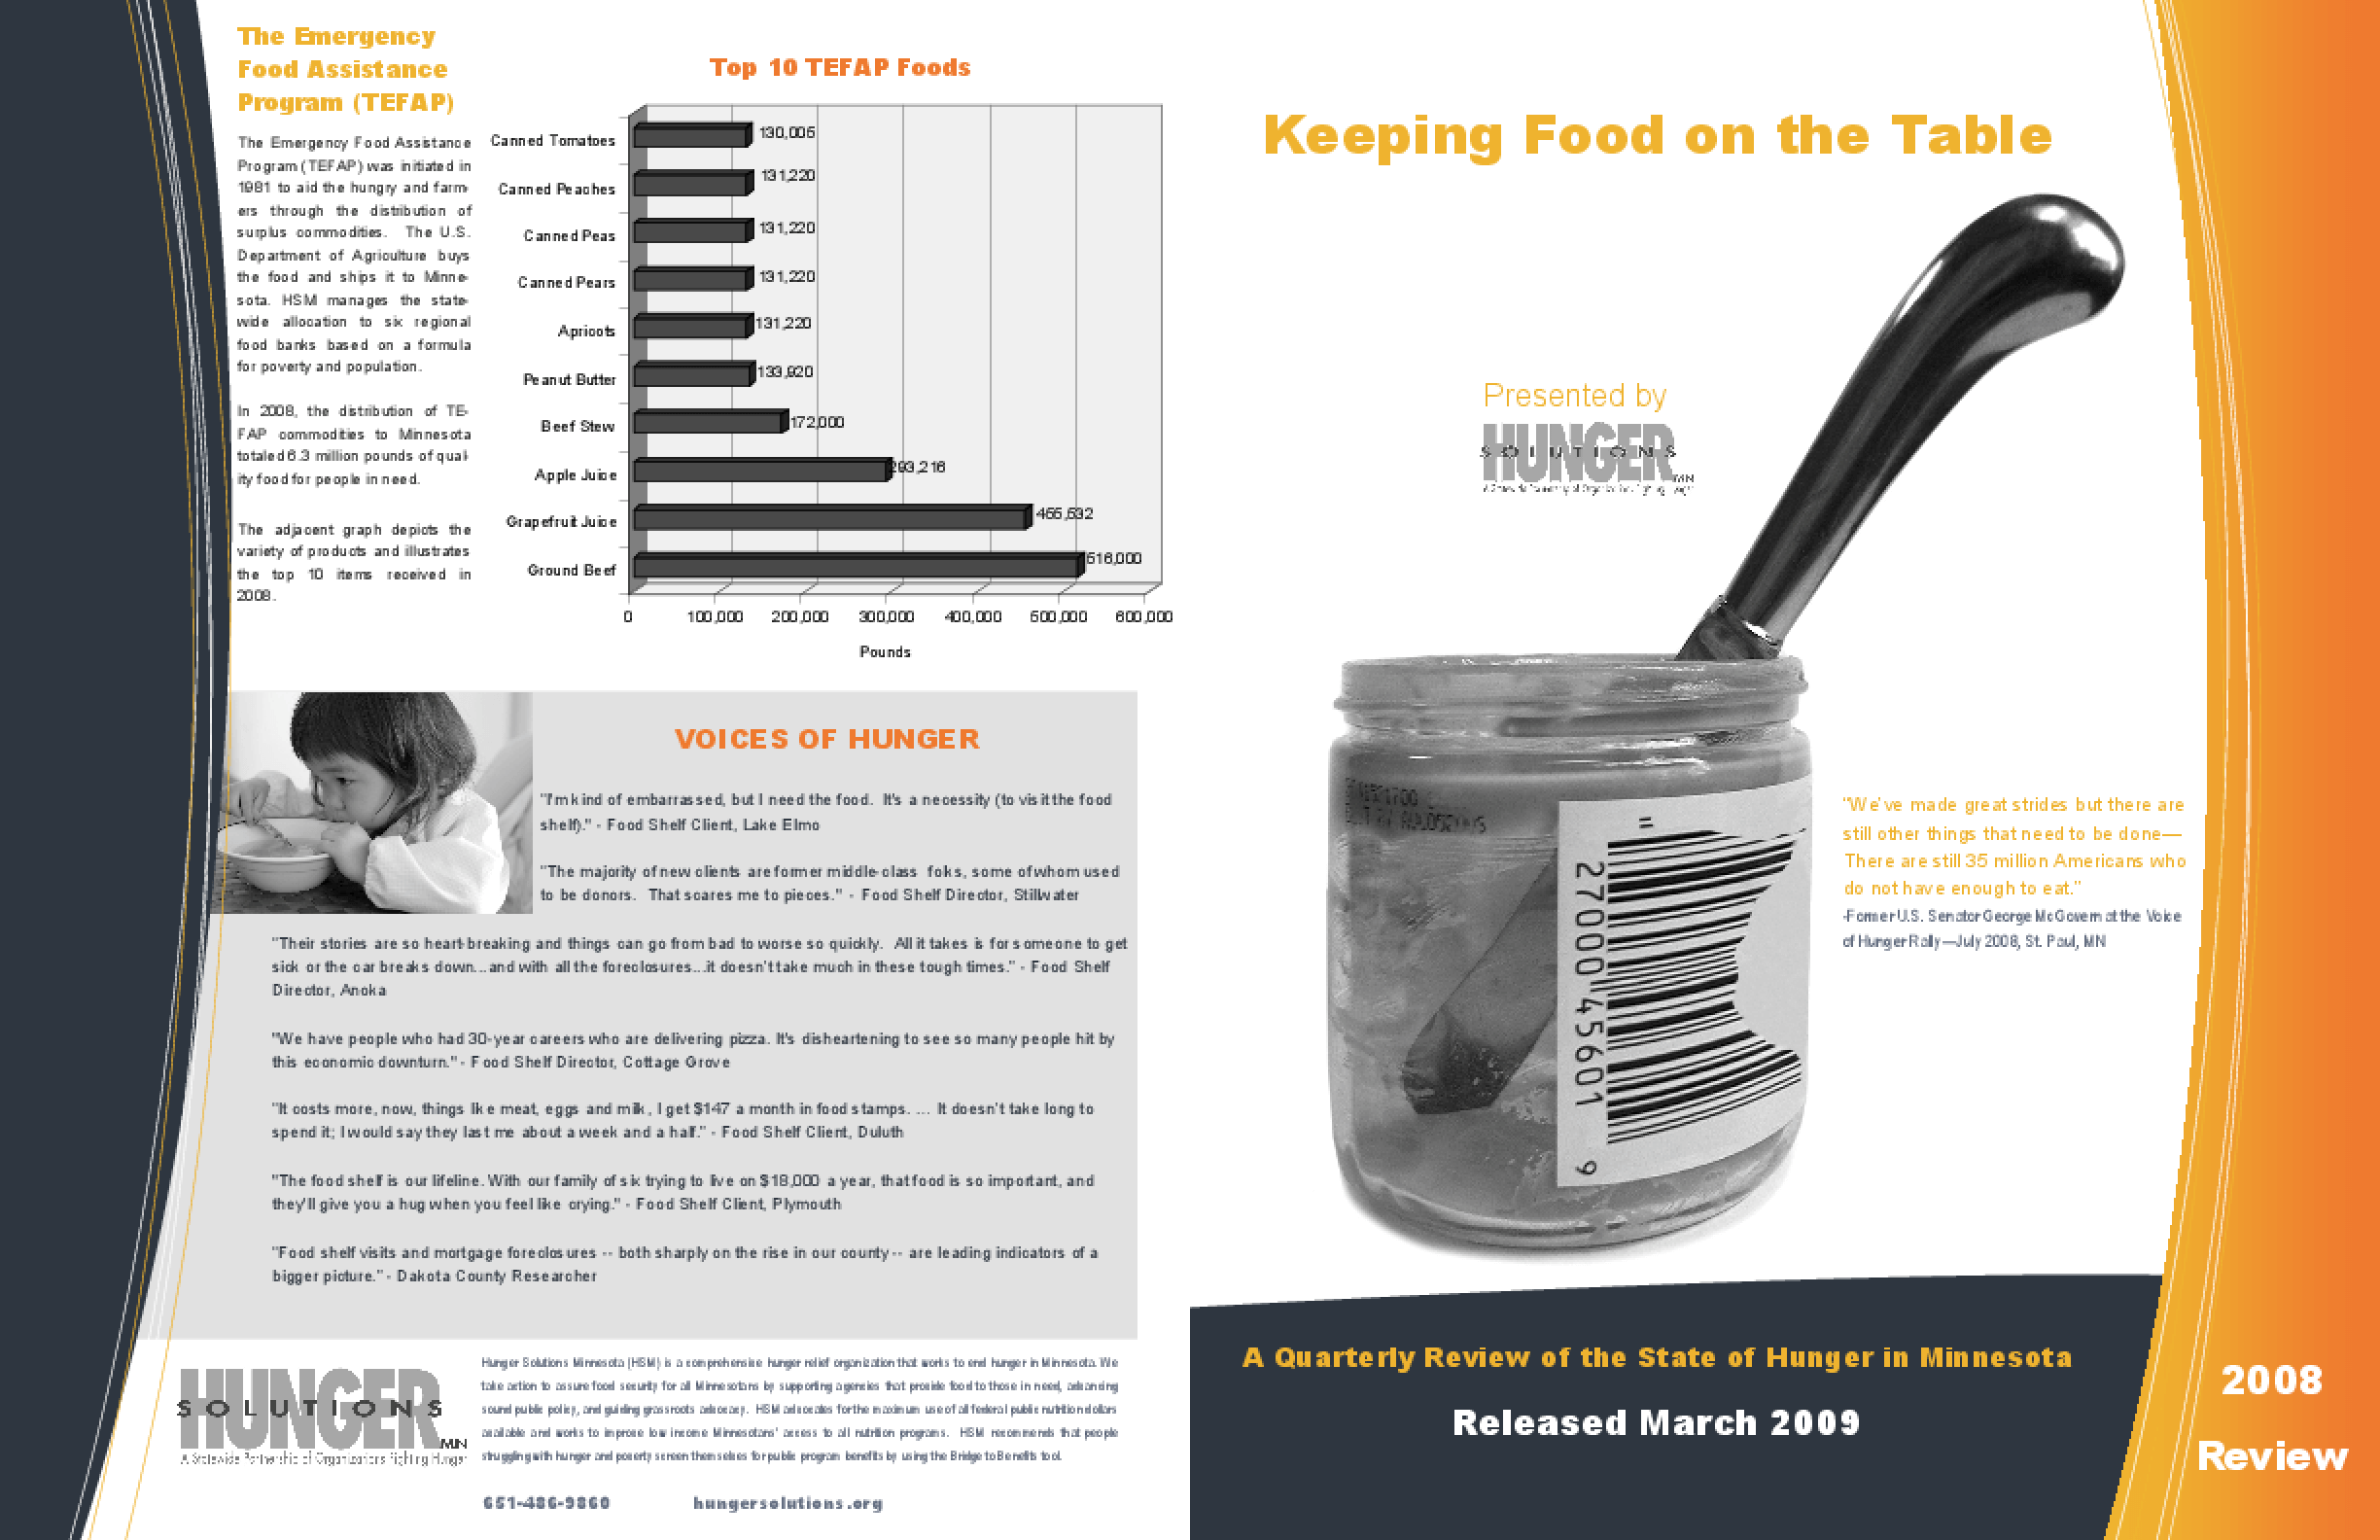 Keeping Food on the Table: A Quarterly Review of the State of Hunger in Minnesota